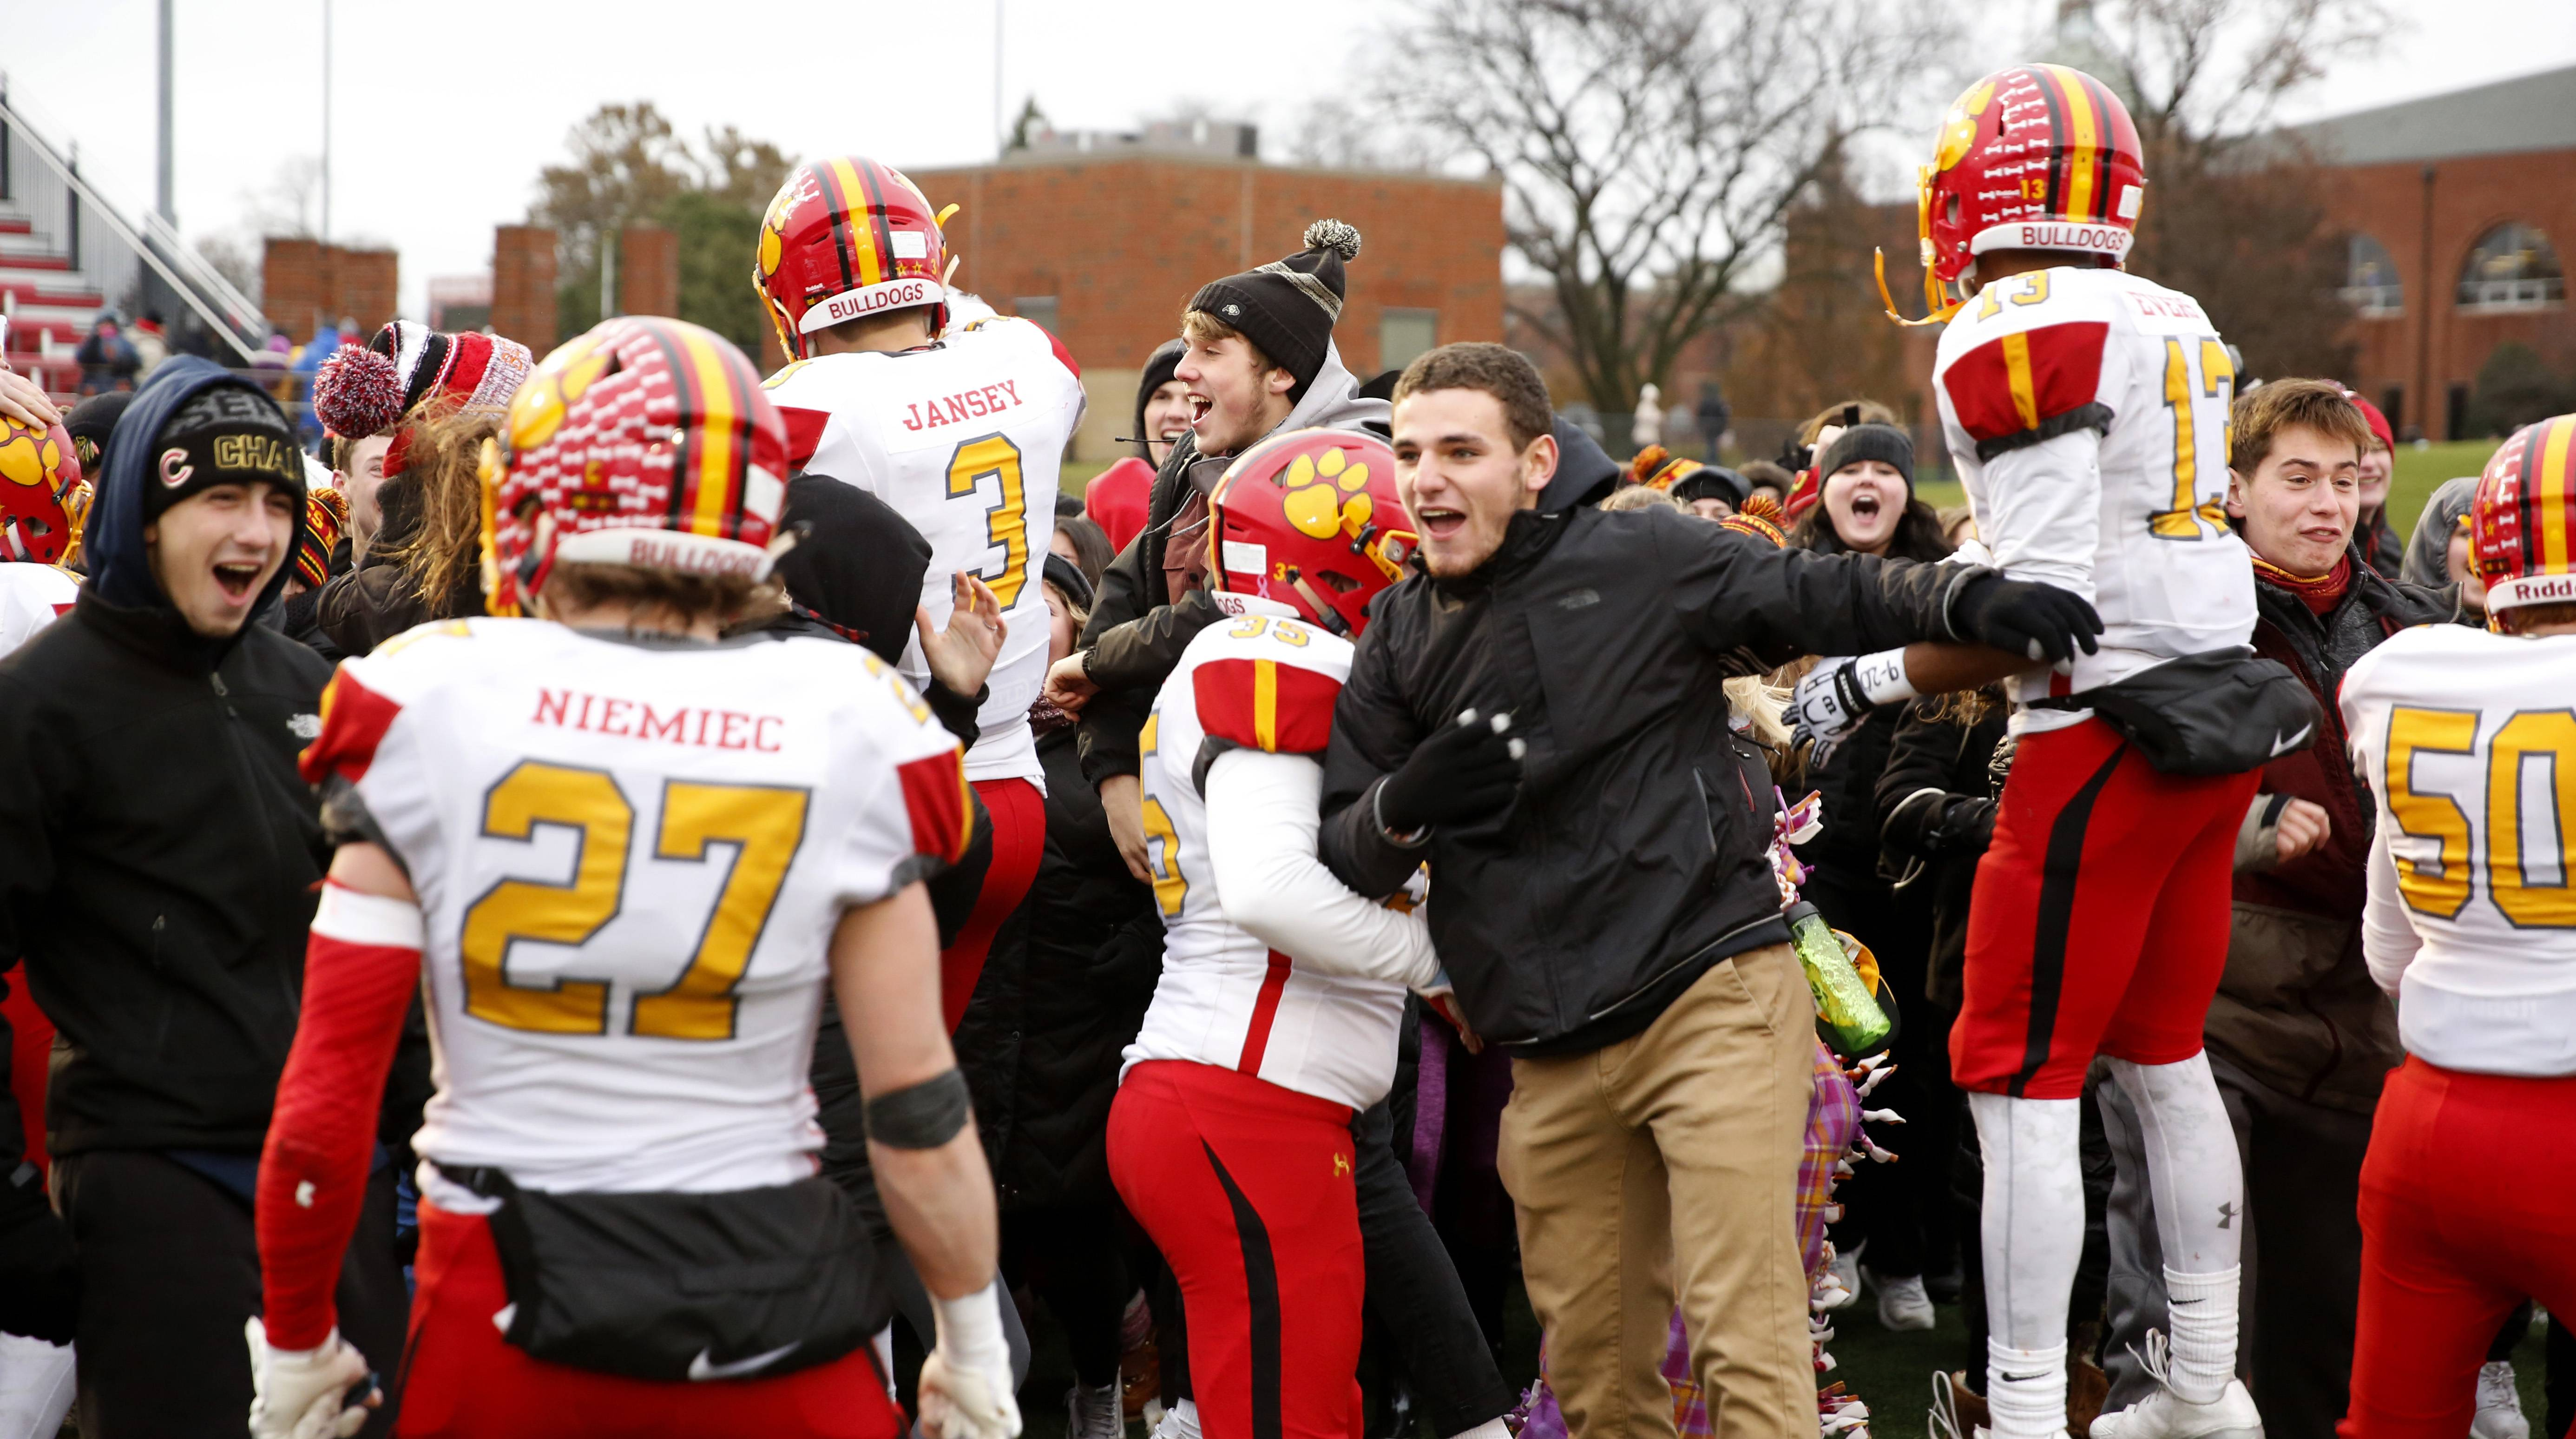 Batavia players and their fans celebrate a 23-13 win over Benet in the Class 7A football semifinal game in Lisle Saturday.